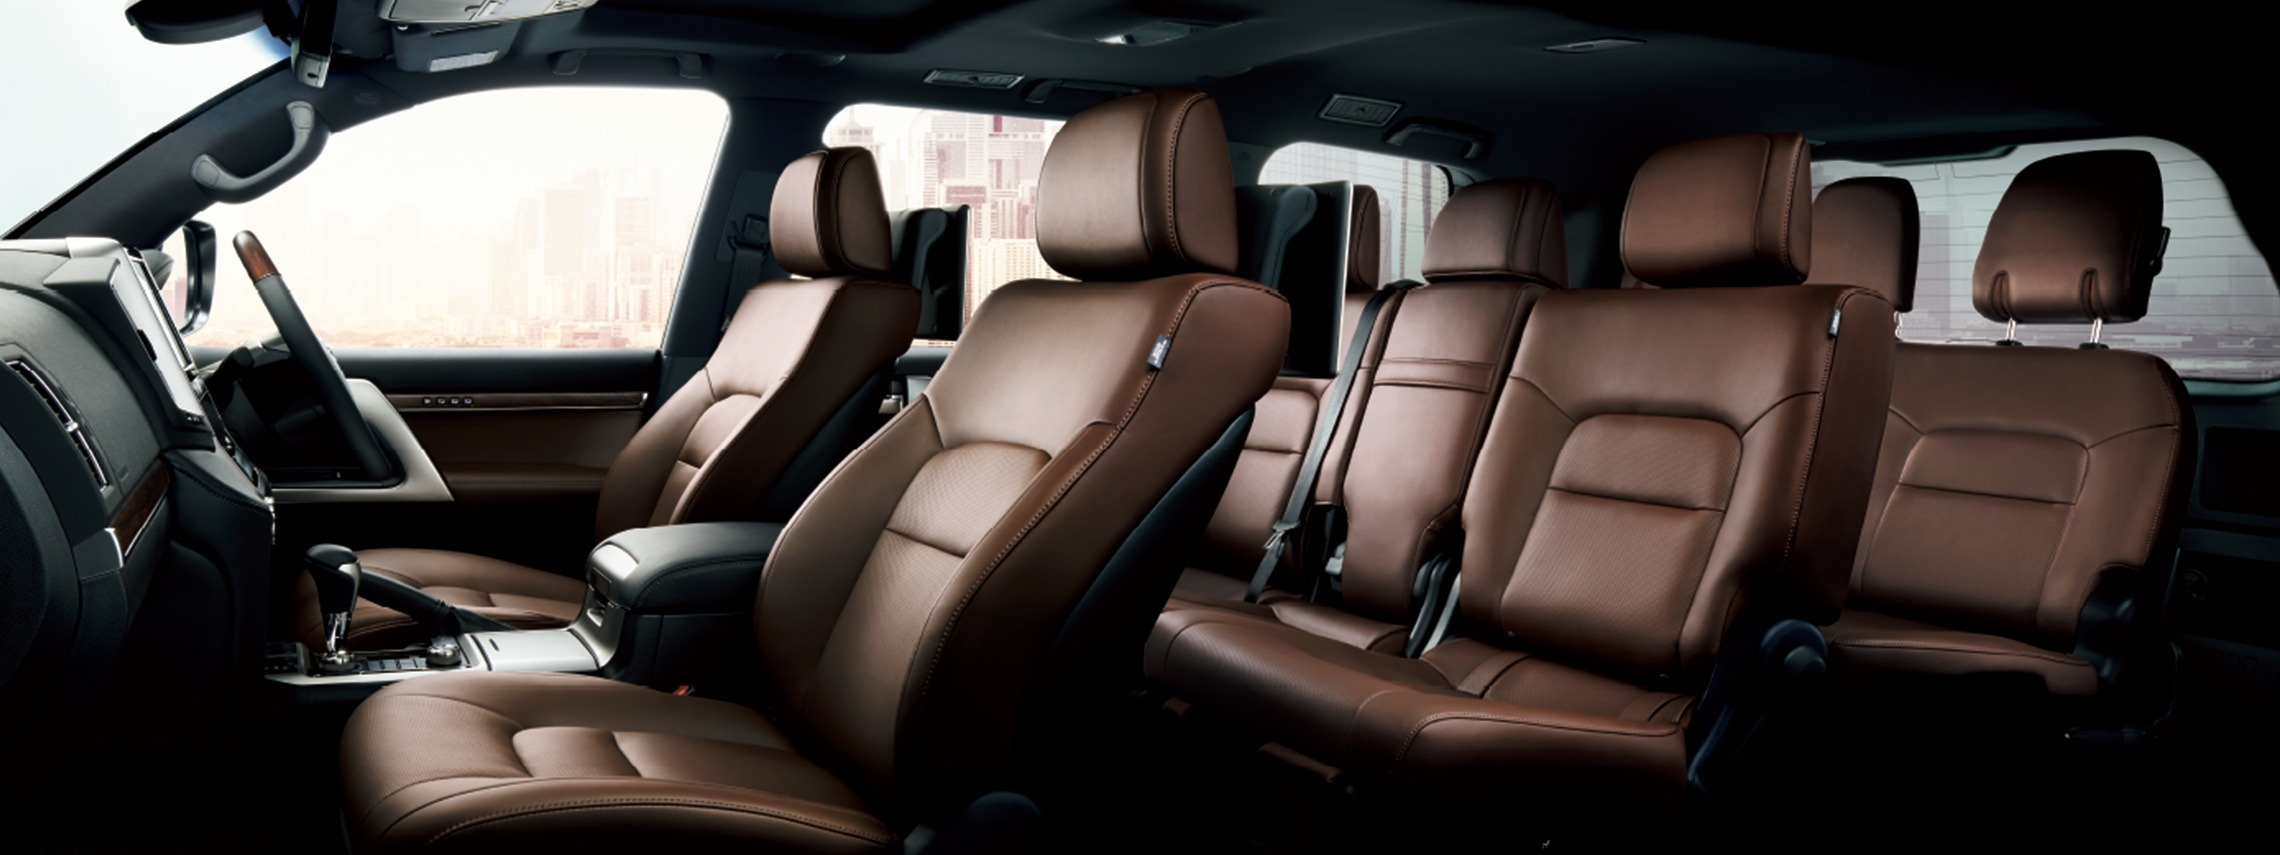 15LC3_MainSeat_101_ZX202LB42